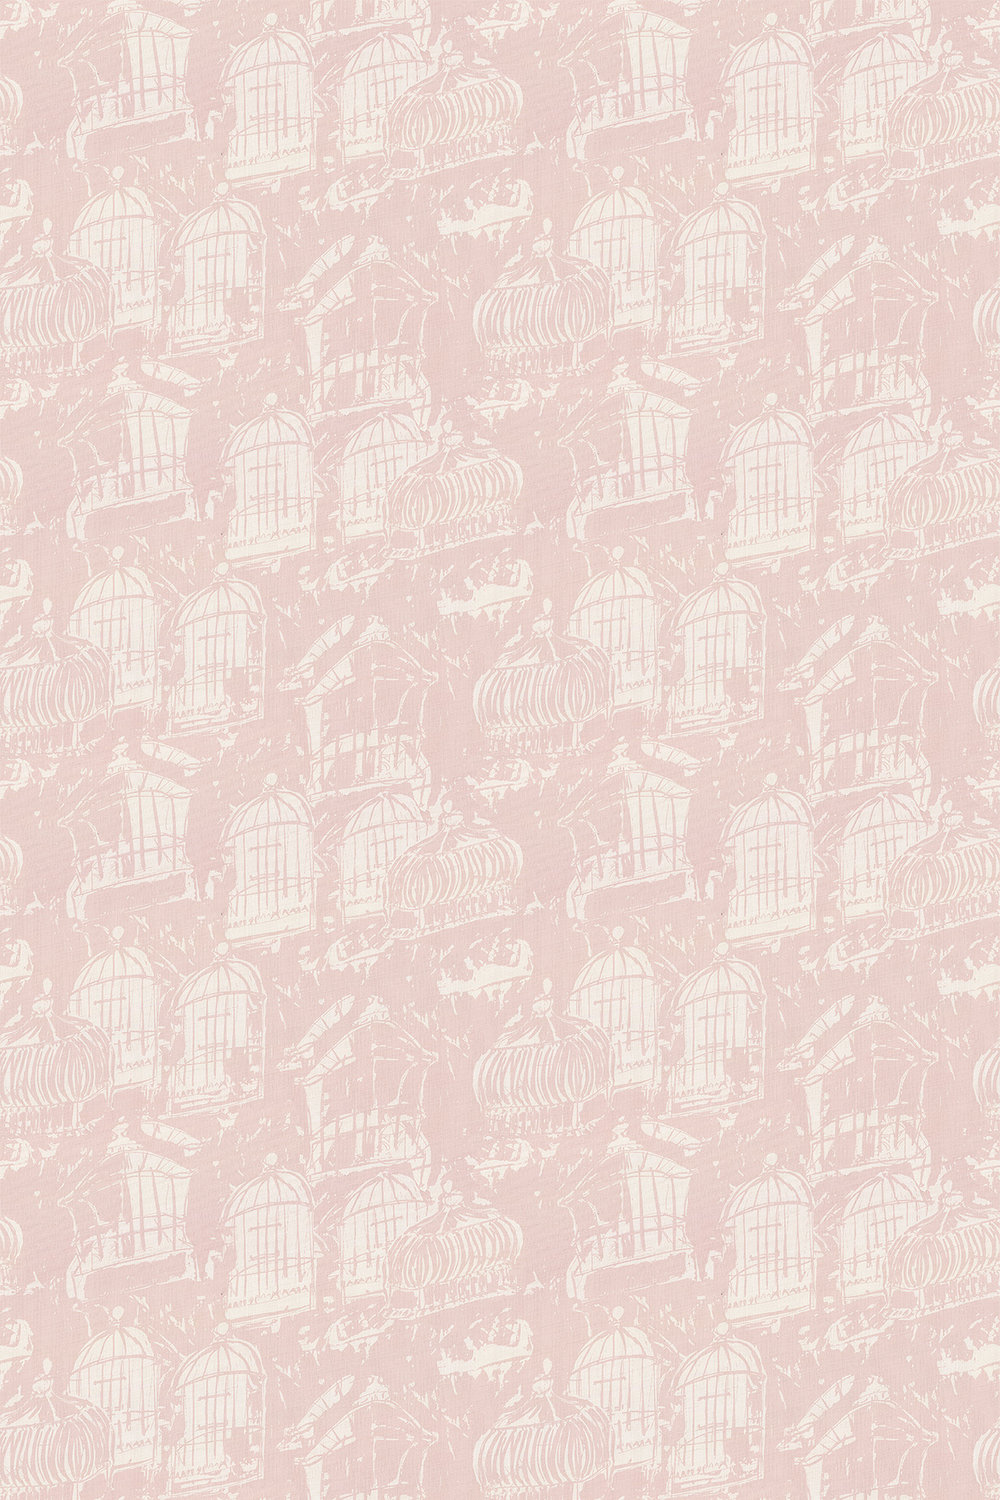 Linen Union Birdcage 03 Fabric - Pink - by Belynda Sharples